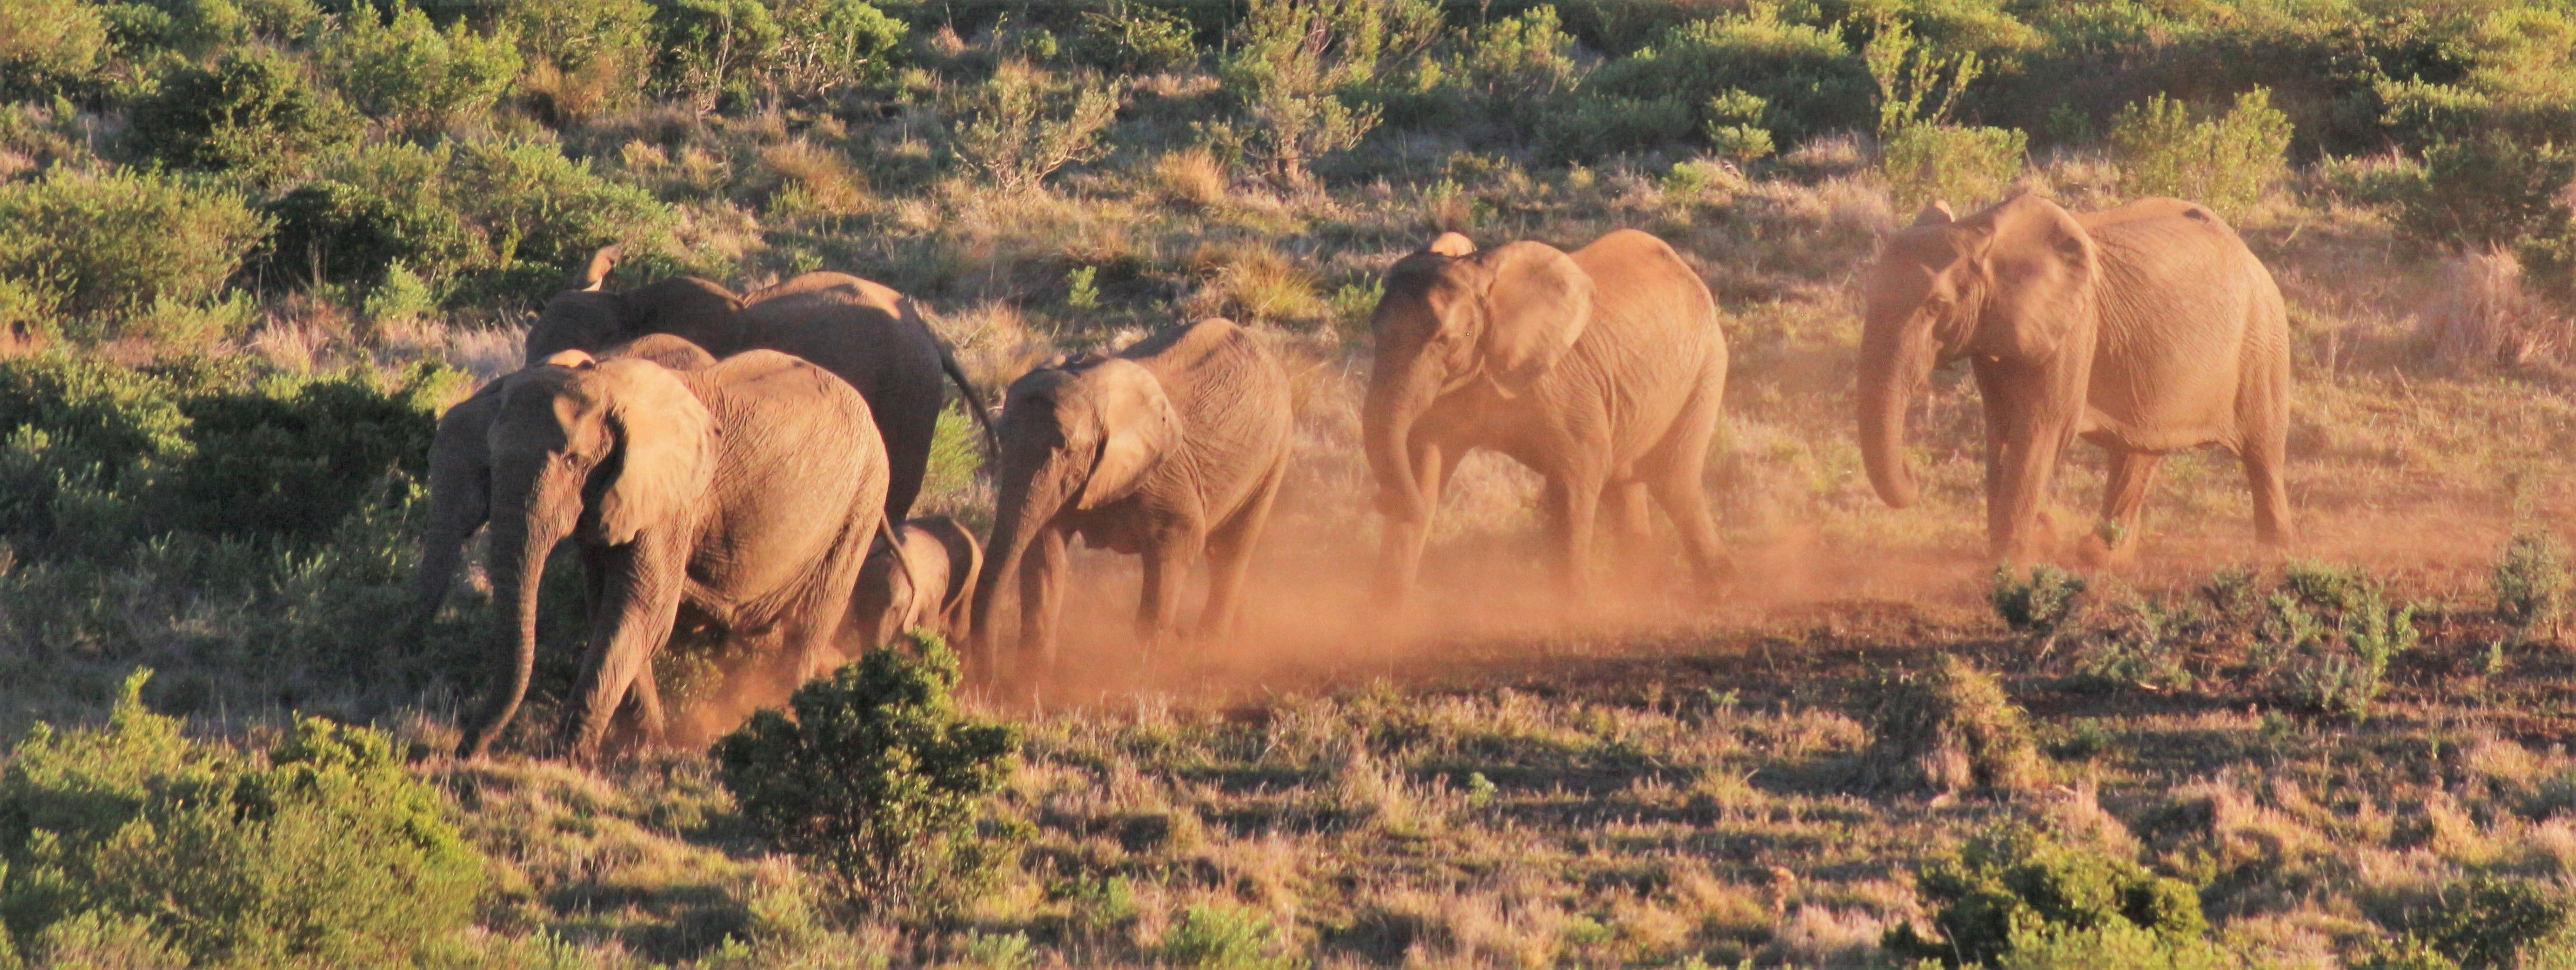 Elephants viewed on a Tour of the Addo National Elephant Park